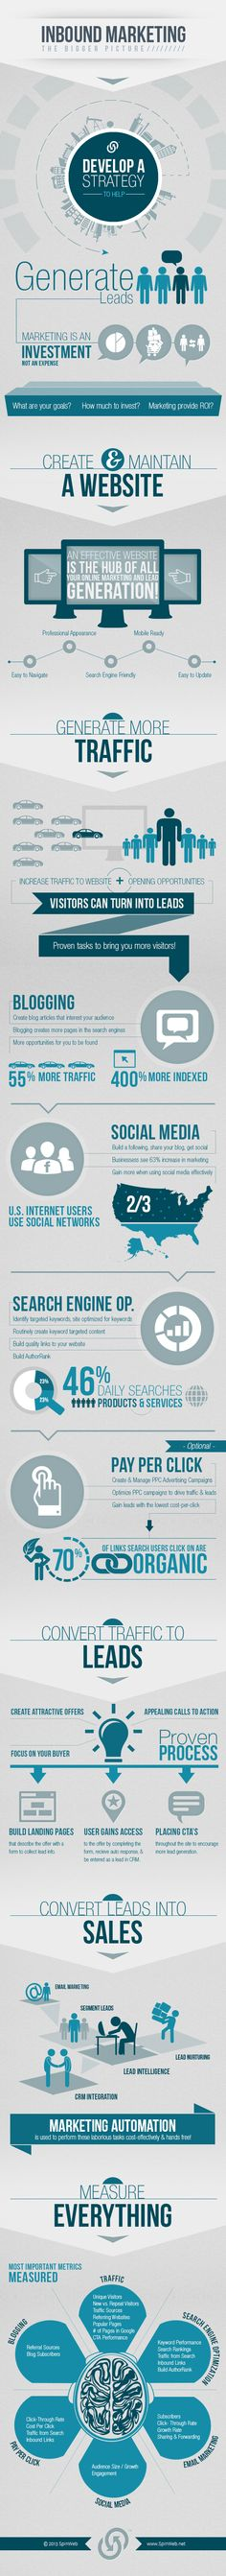 The Bigger Picture of #InboundMarketing [#Infographic]